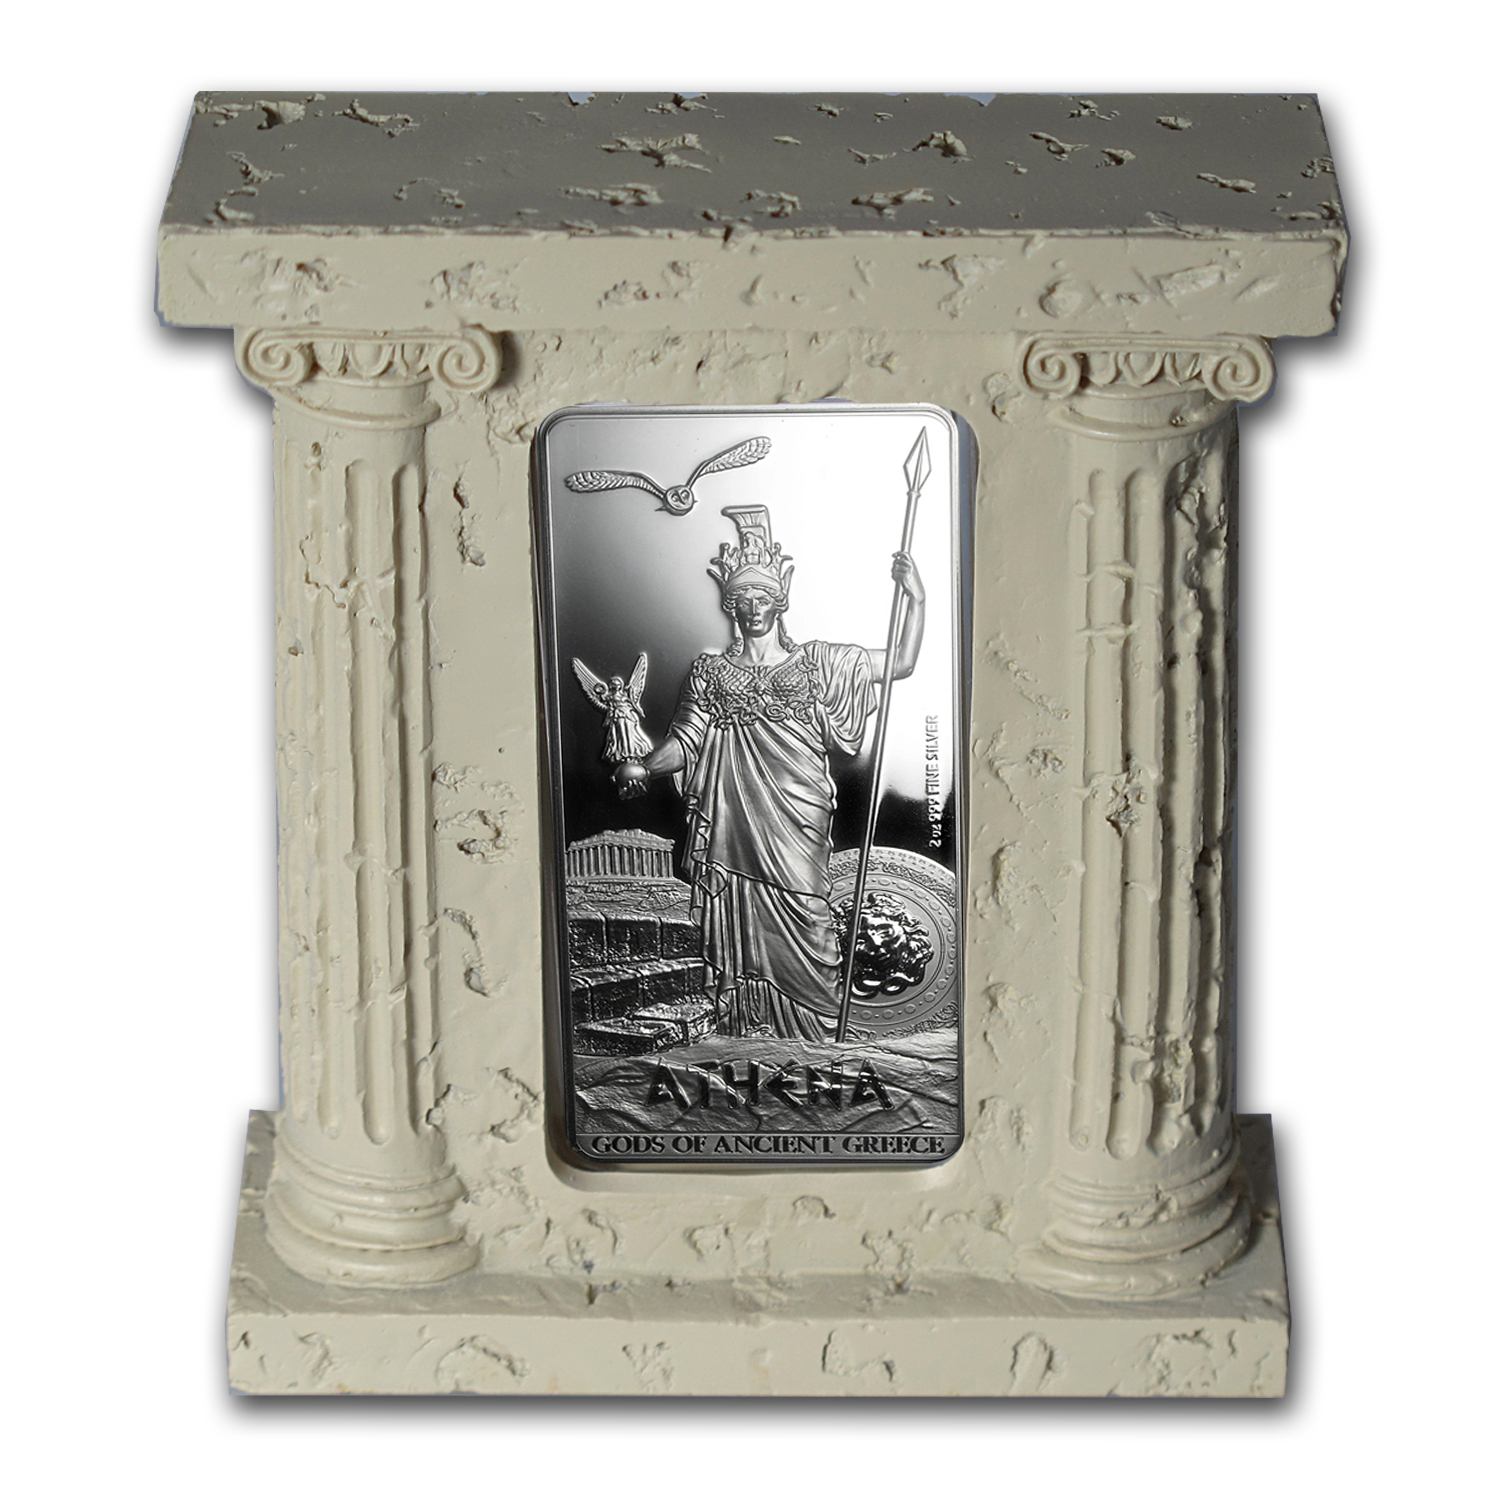 2014 Niue 2 oz Silver $5 Gods of Ancient Greece Proof (Athena)